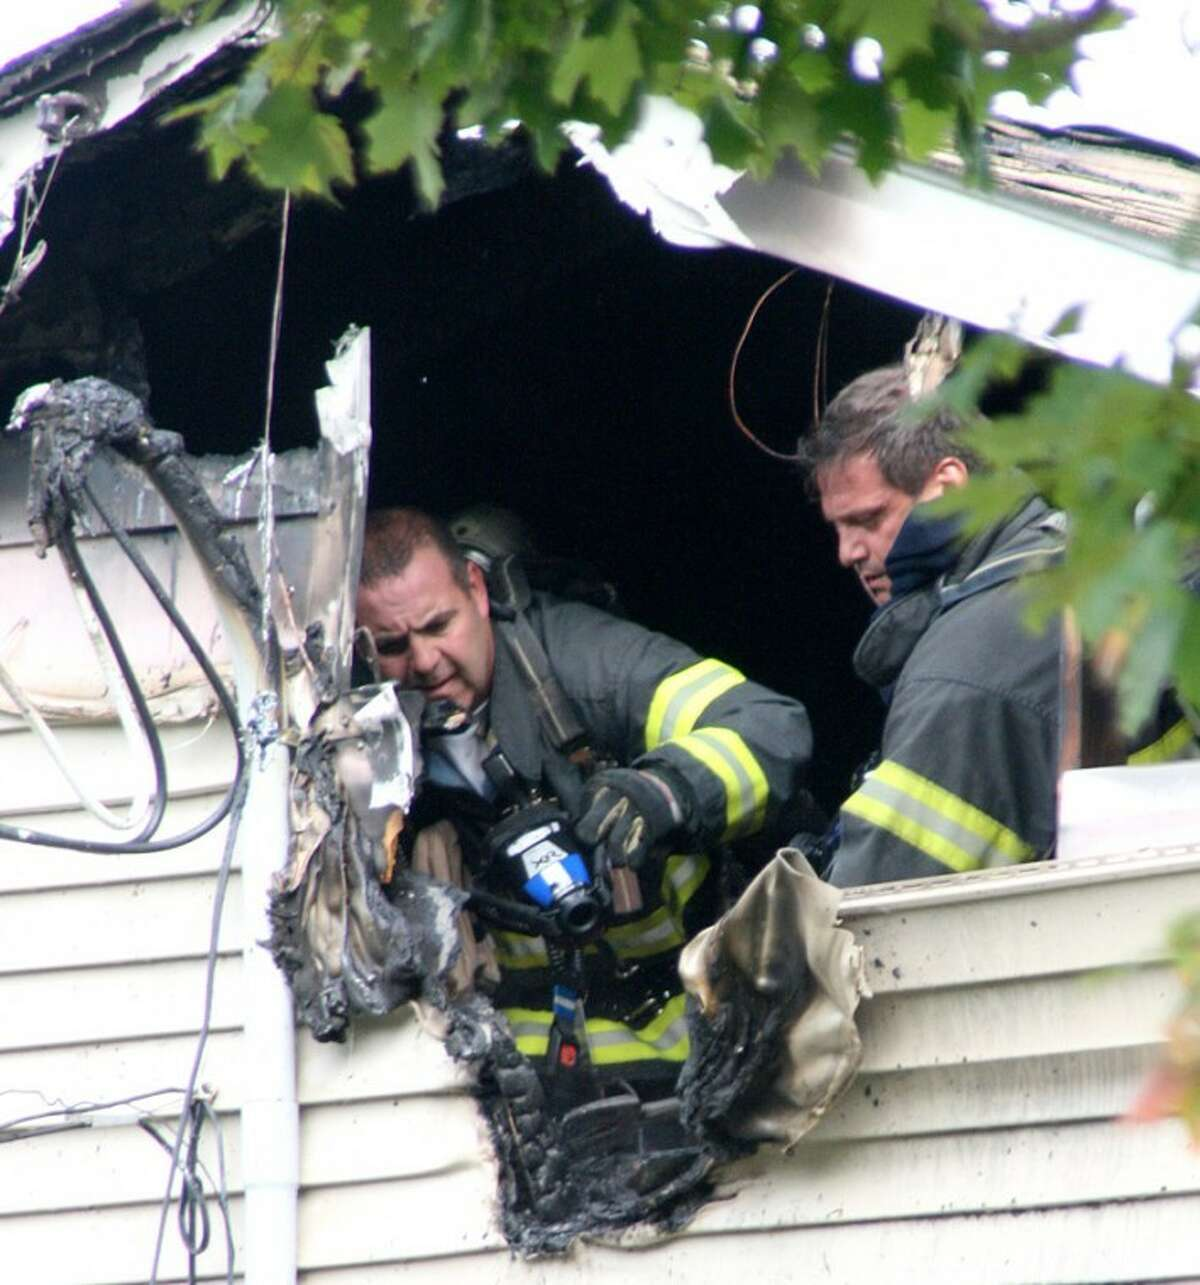 Photo by Chris Bosak Norwalk firefighters cut away wood and siding near the source of an electrical fire Monday morning on Country Club Road in Norwalk.